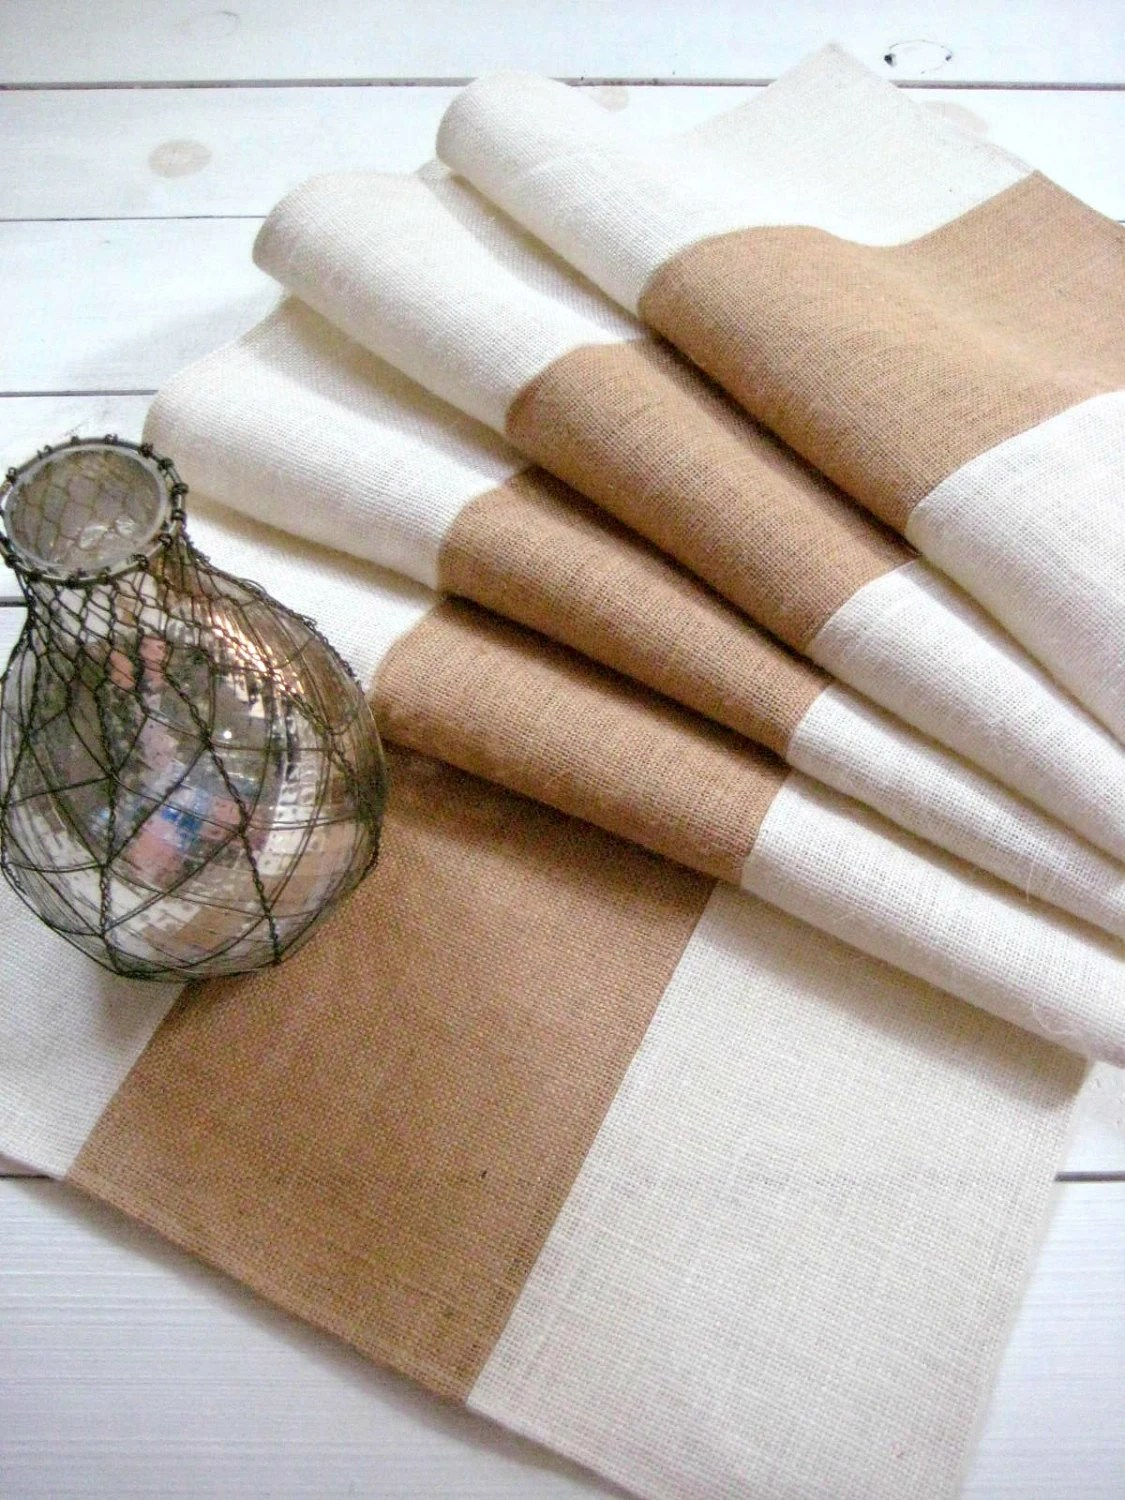 Farmhouse Style Table Runners Contemporary Farmhouse Interior Amazing Natural Home Design